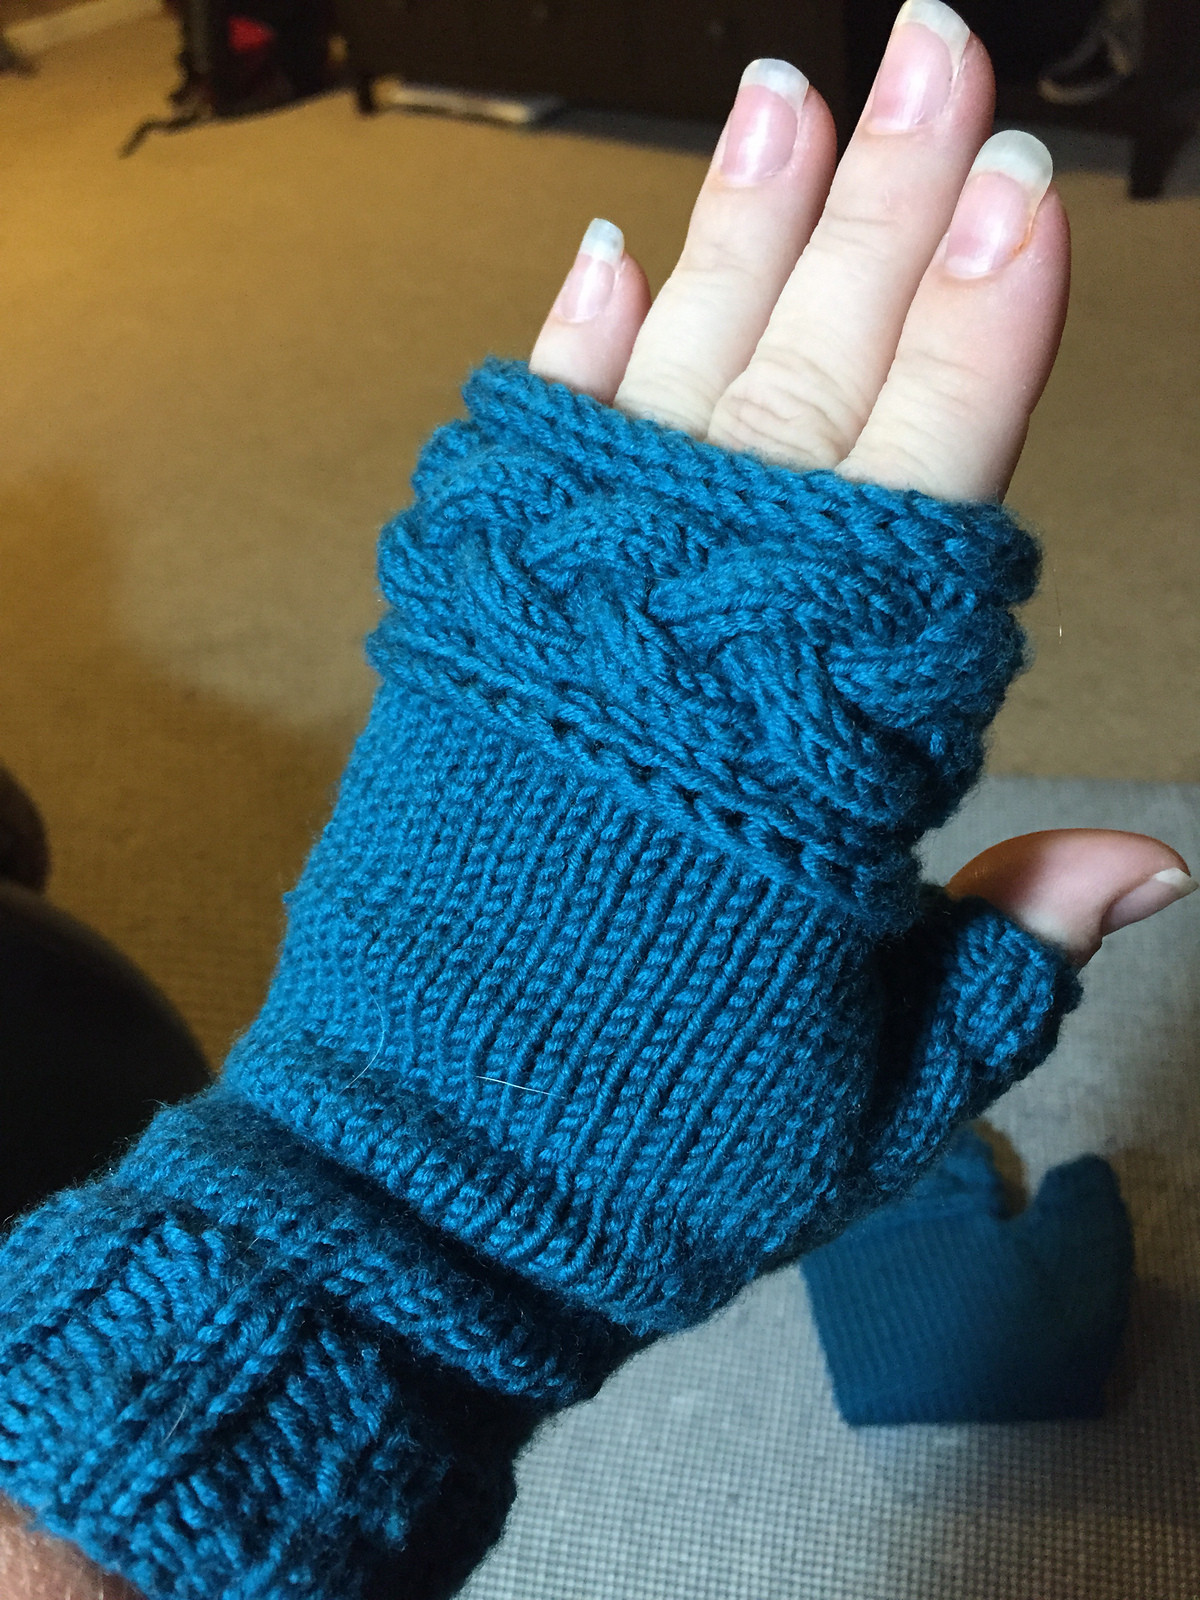 Lovely Twisty Mitts Knitting Patterns Free Pattern for Fingerless Gloves Of Amazing 49 Pictures Free Pattern for Fingerless Gloves